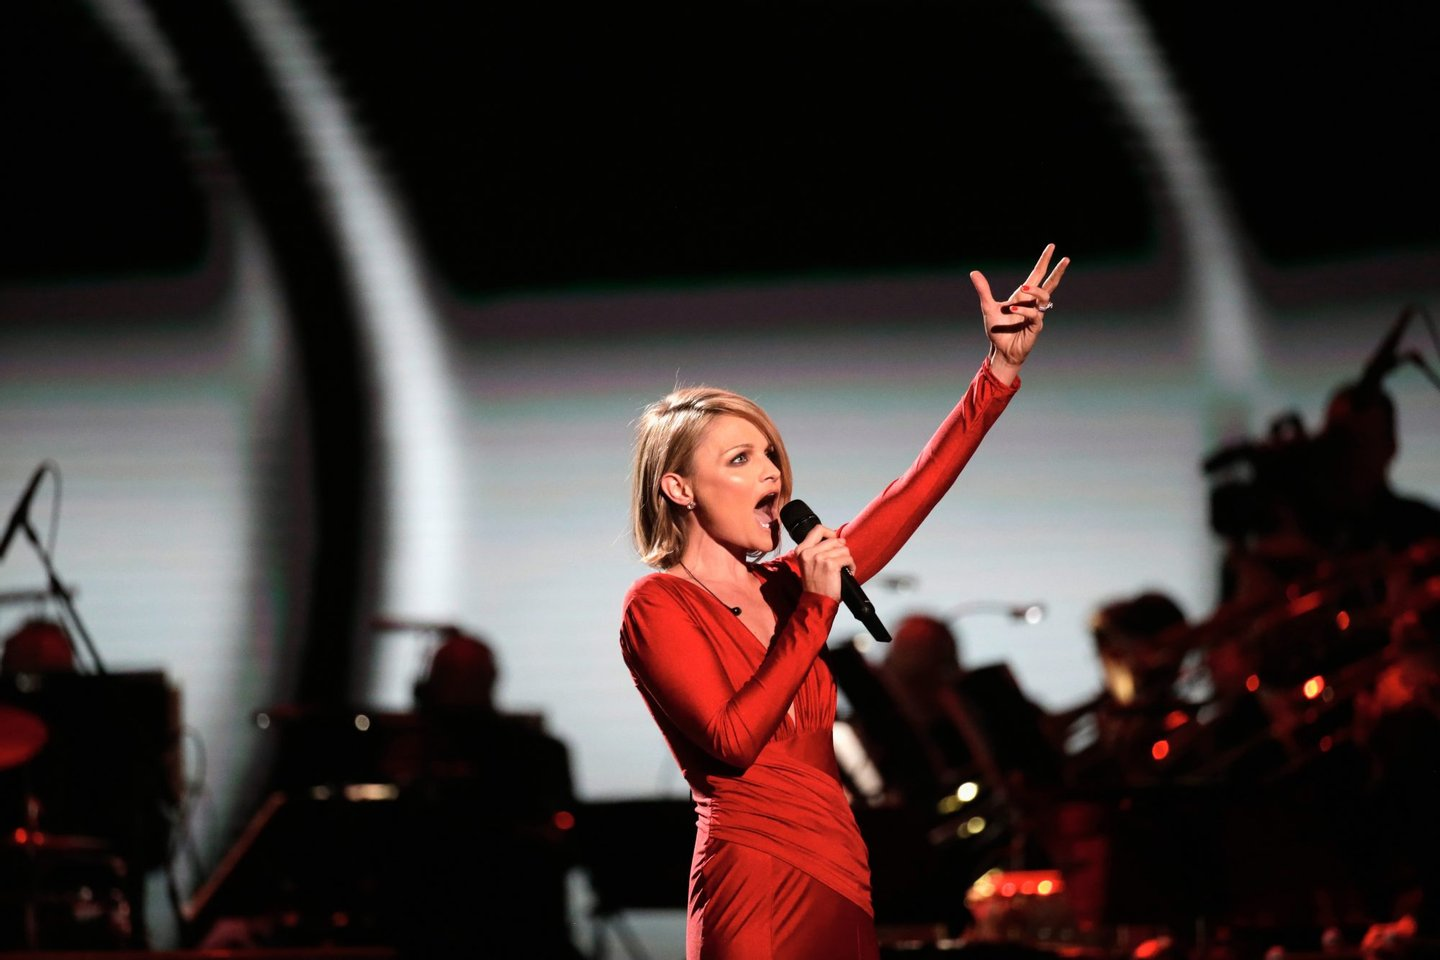 WASHINGTON, DC - JANUARY 20:  Singer Erin Boheme entertains the crowd at the Liberty Inaugural Ball on January 20, 2017 in Washington, DC.  The Liberty Ball is the first of three inaugural balls that President Donald Trump will be attending.  (Photo by Rob Carr/Getty Images)